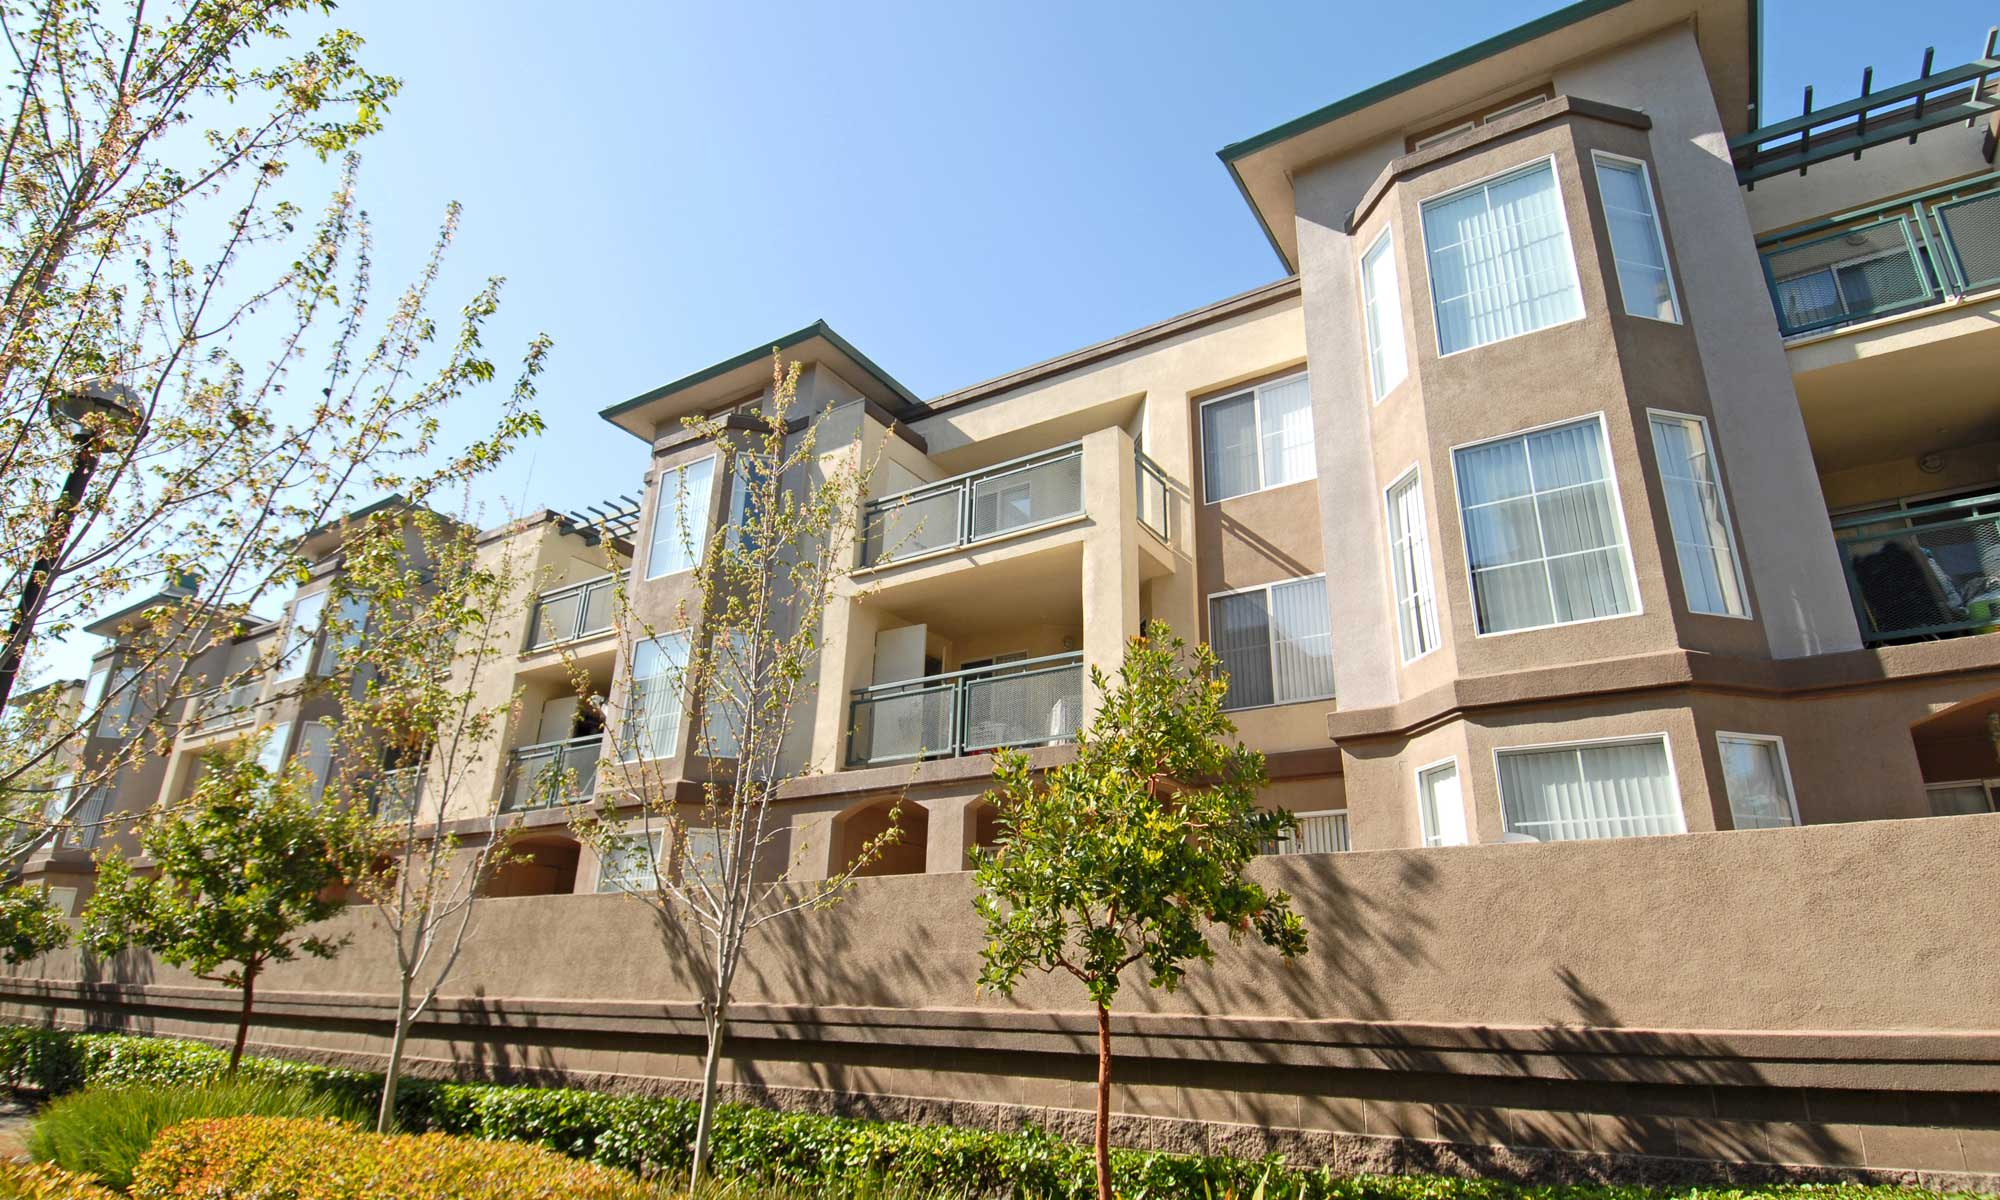 San jose ca apartments for rent the enclave - San jose 2 bedroom apartments for rent ...